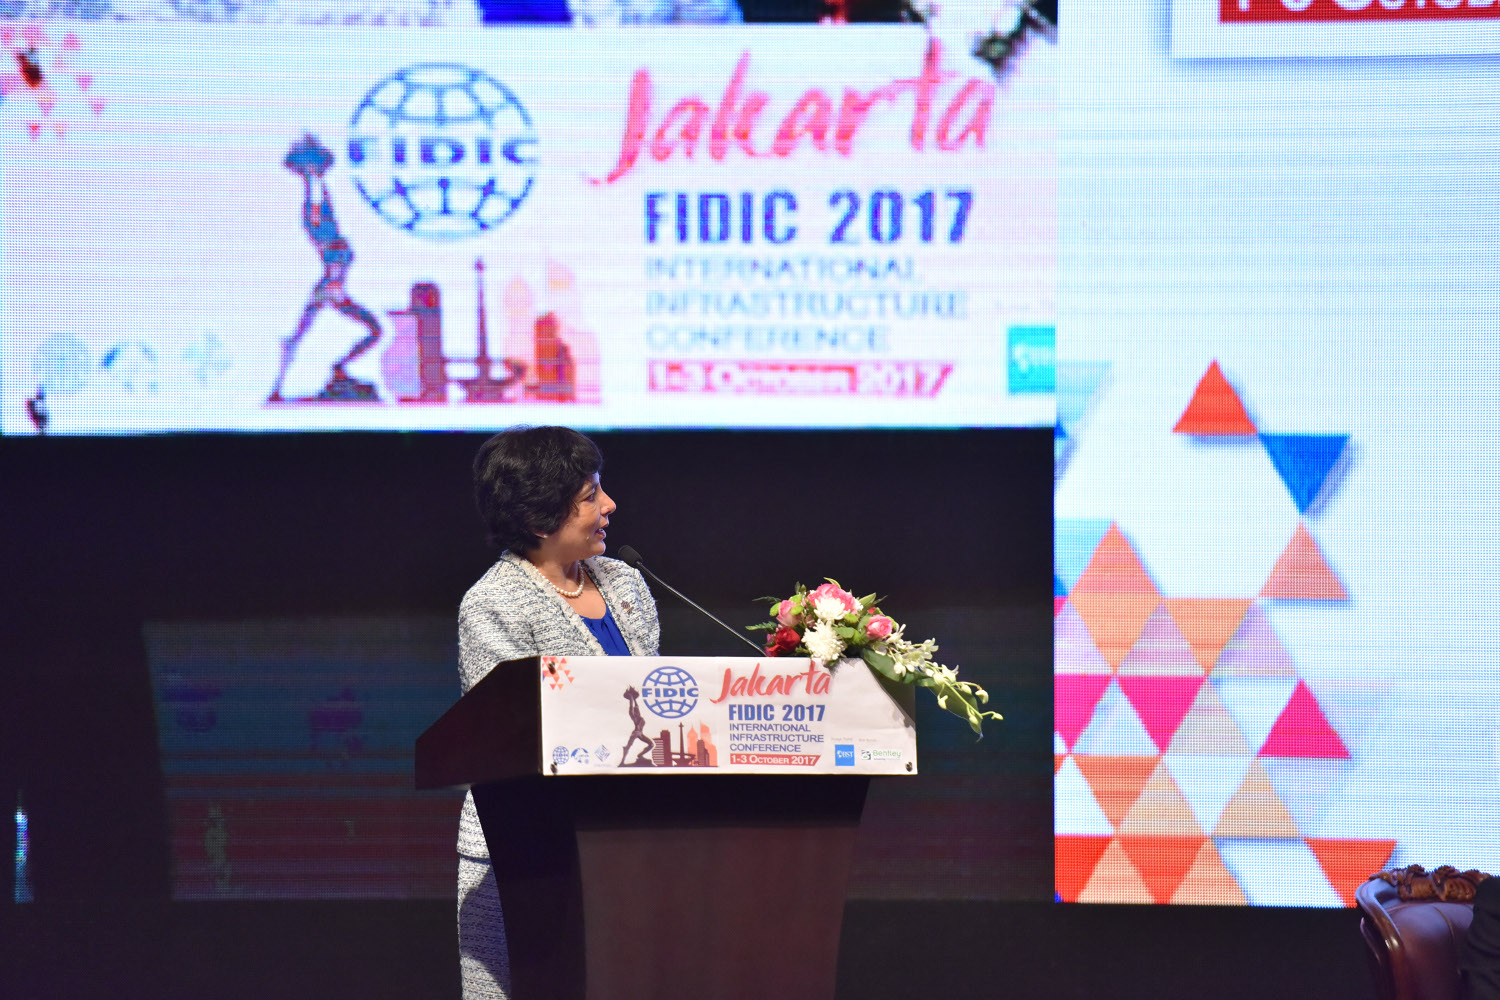 Dr. Kanga presents at the FIDIC 2017 Conference on Infrastructure Resilience - 2 October 2017